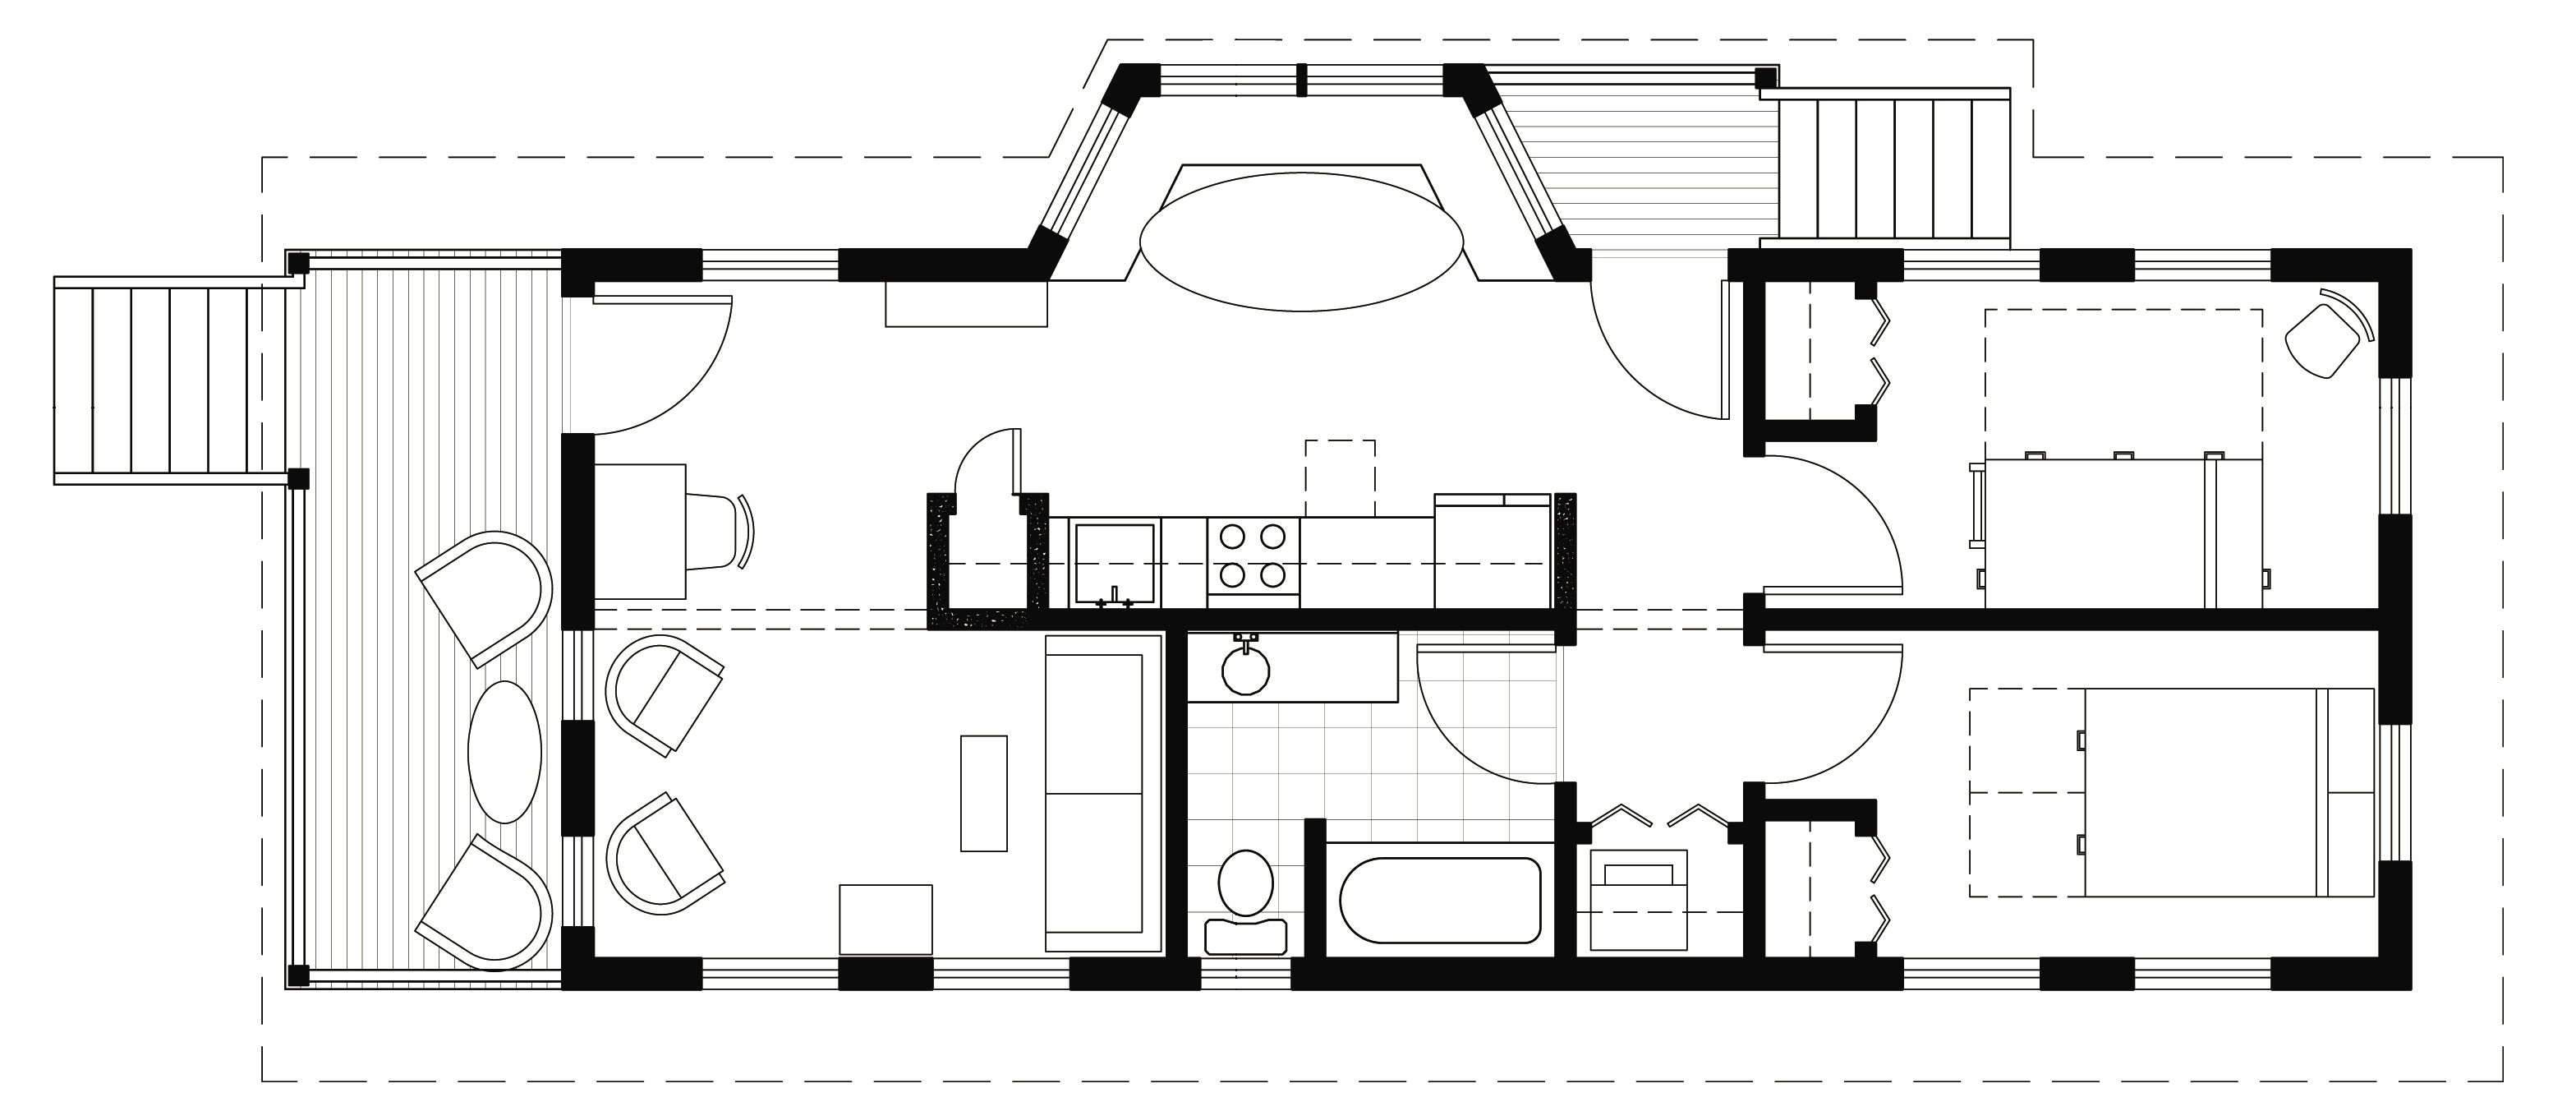 Shotgun house floor plans shotgun houses floor plans for Shotgun floor plans